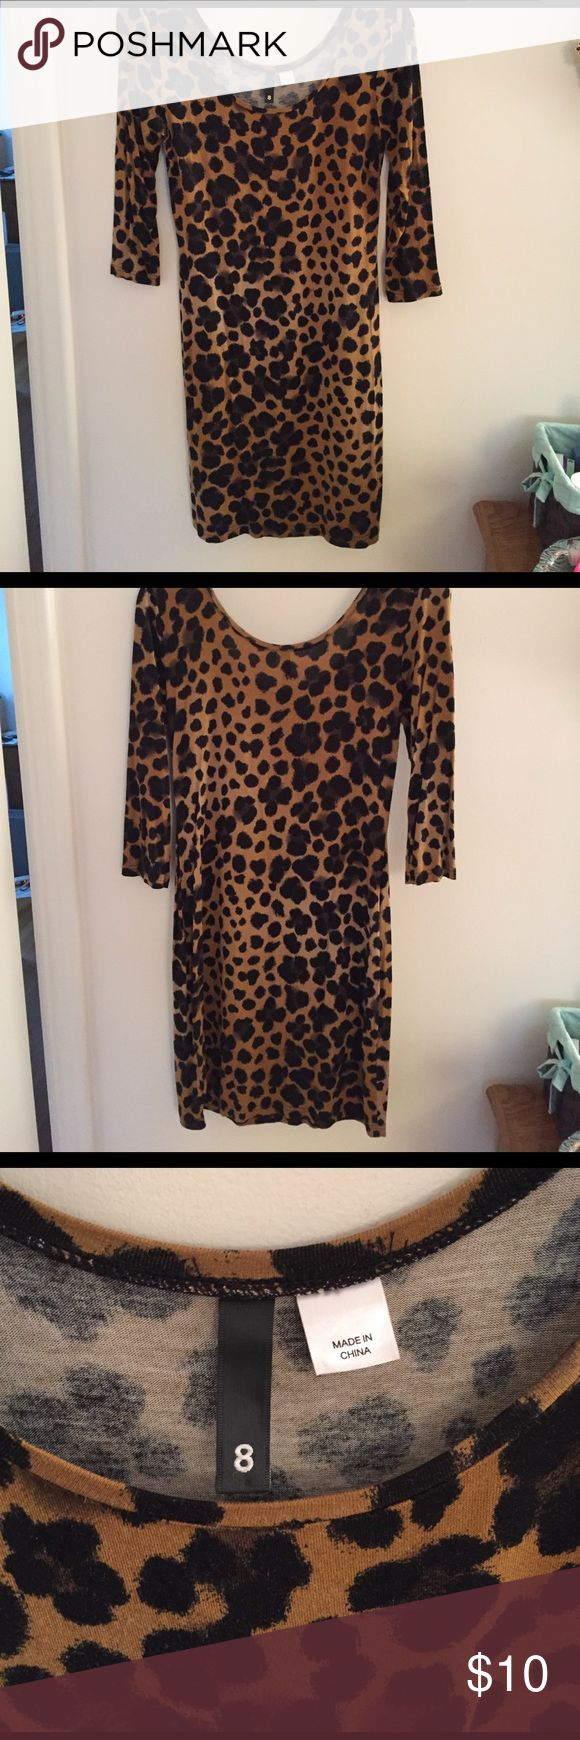 Body Con Animal Print Dress Animal Print Body Con Dress. It it meant to be tight. I personally wore it for Halloween with tights and animal ears. It is a size 8 from H&M H&M Dresses Mini